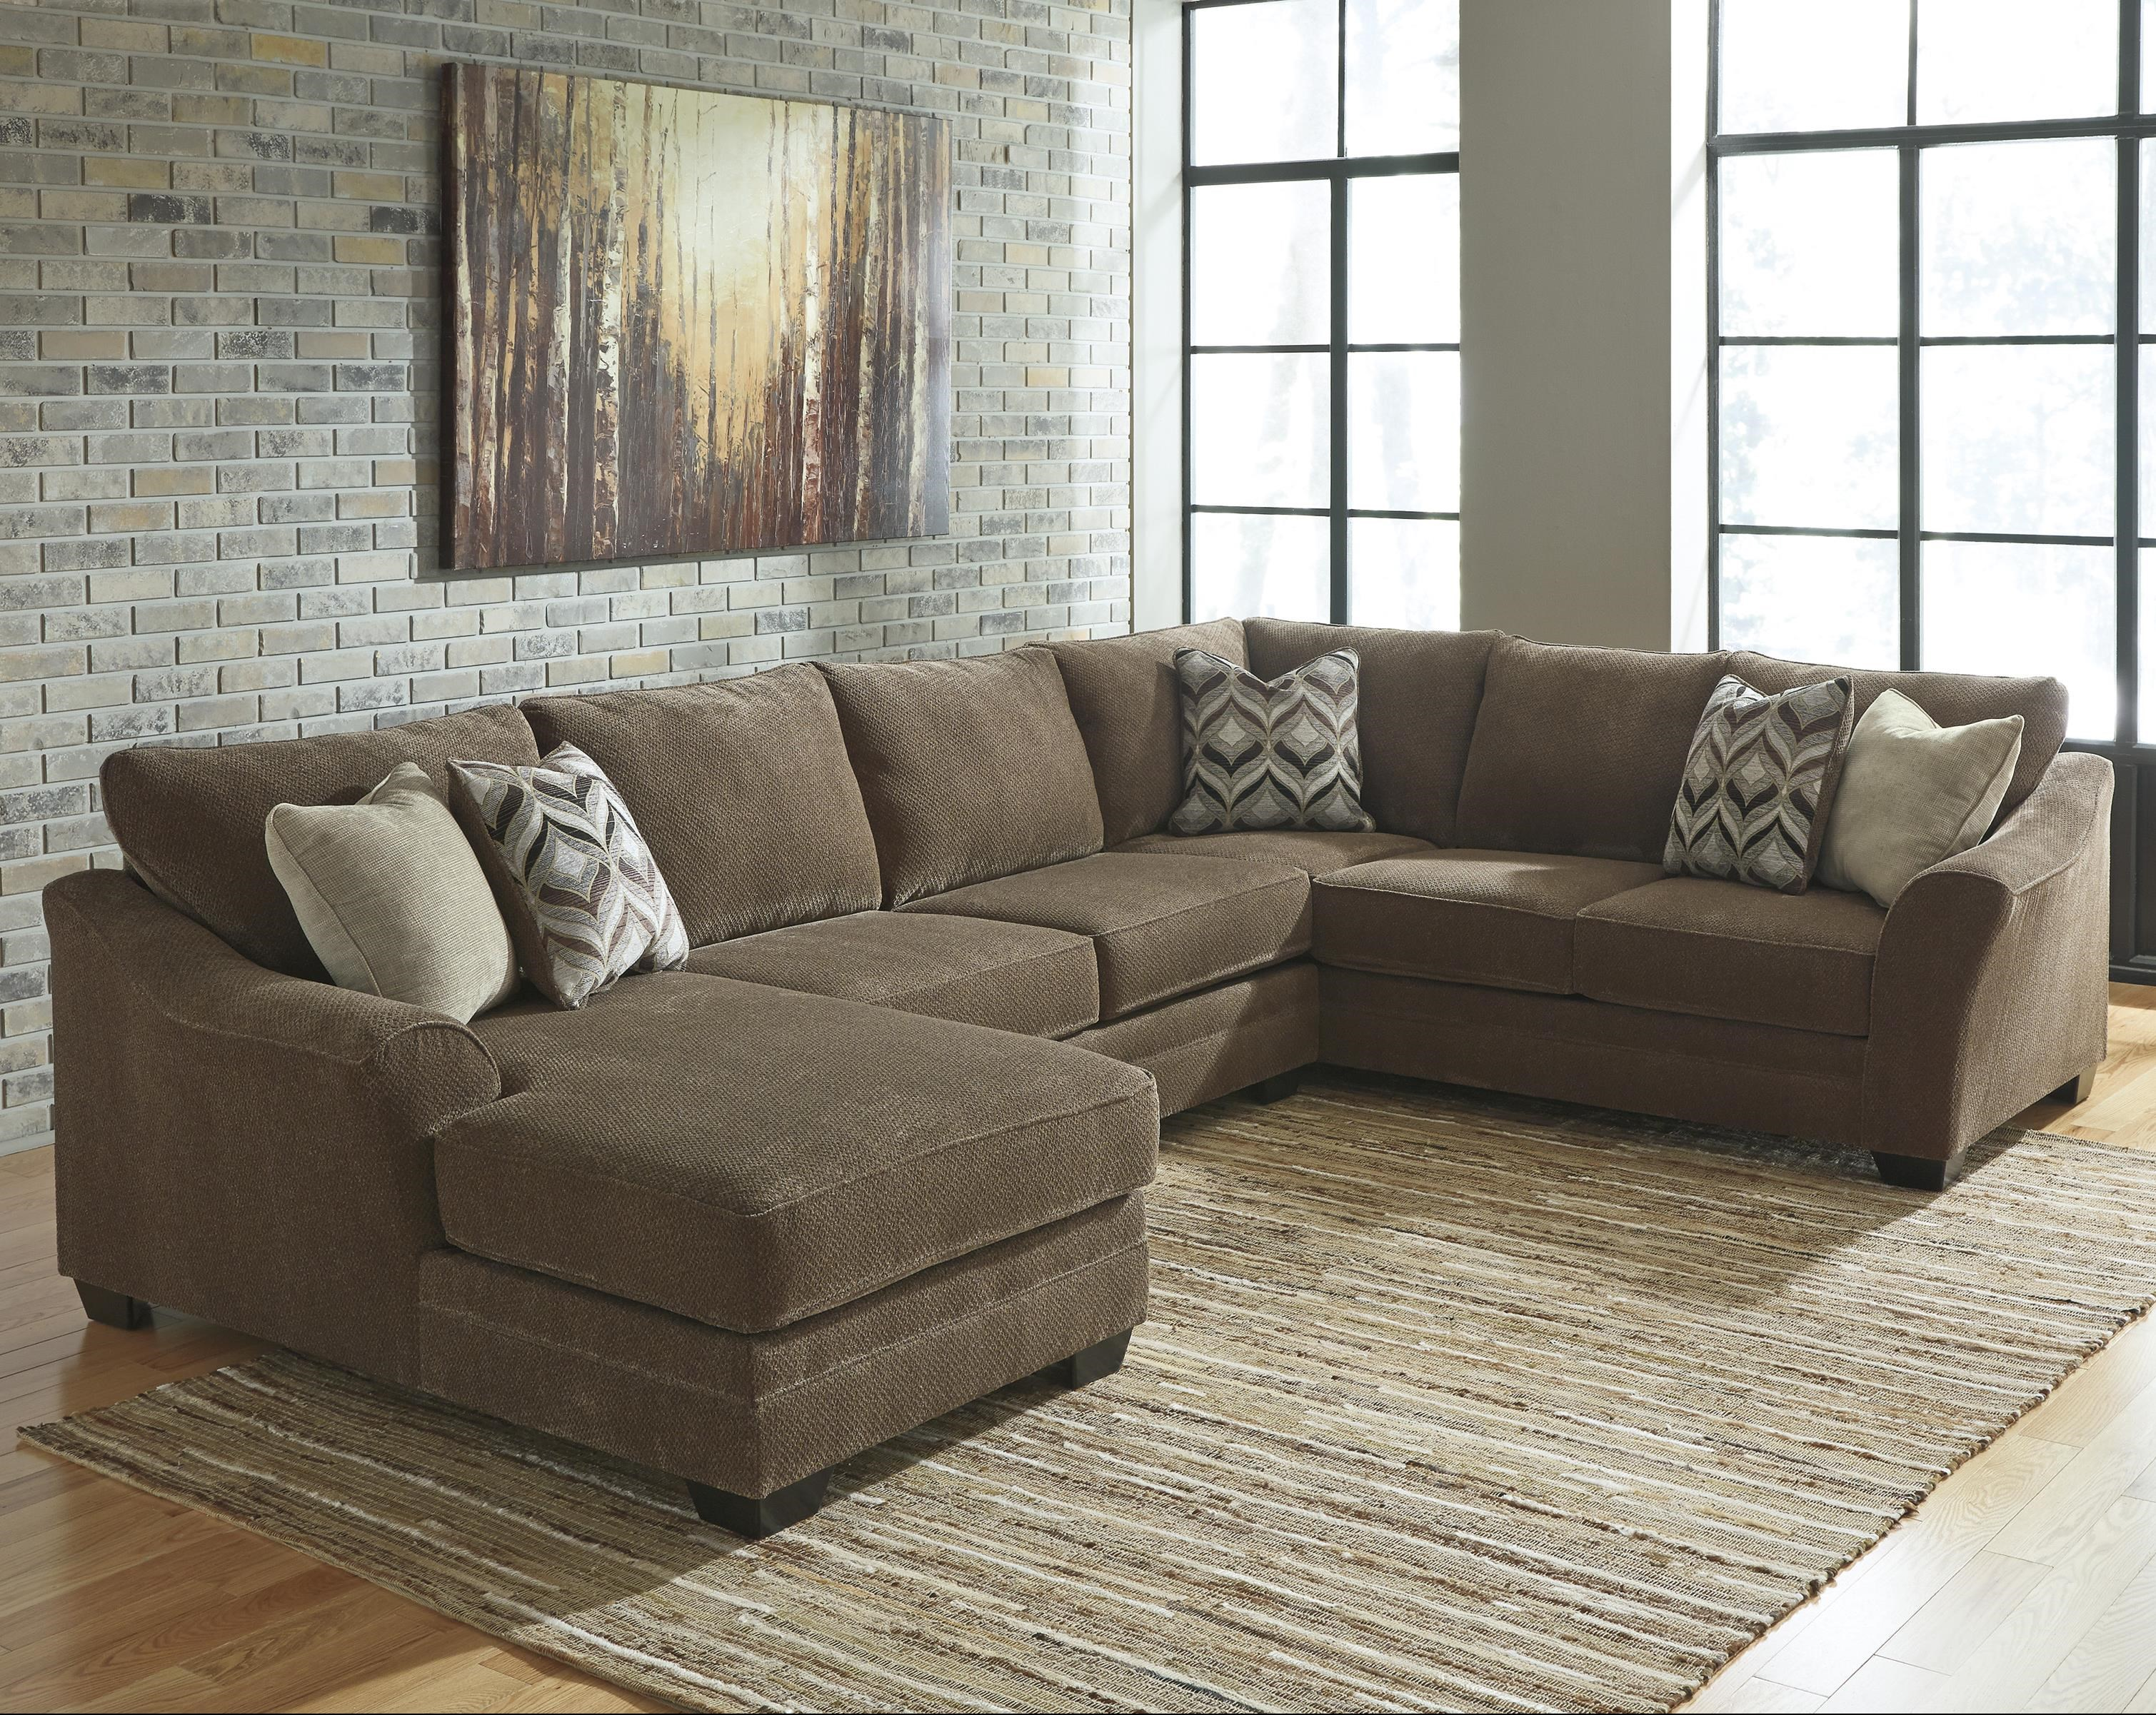 Benchcraft Justyna Contemporary 3 Piece Sectional With Left Chaise Walkers Furniture